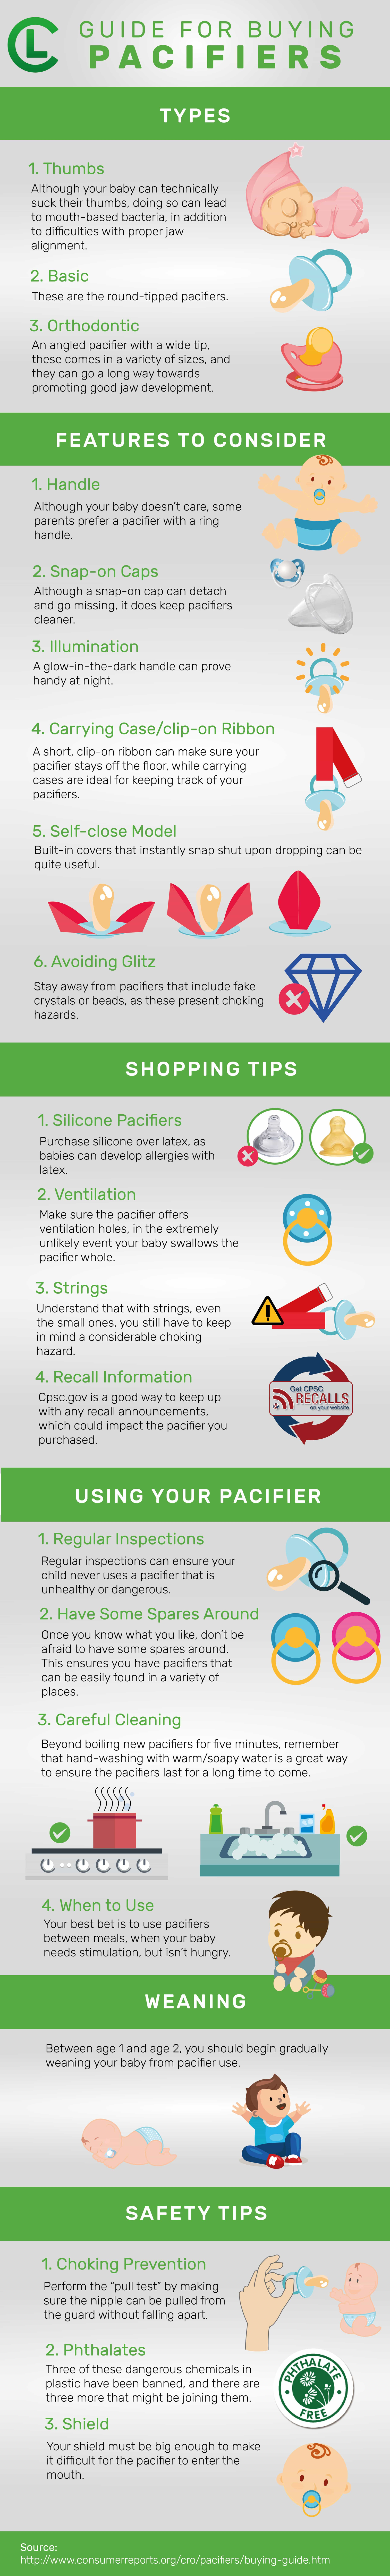 Guide For Buying Pacifiers Infographic